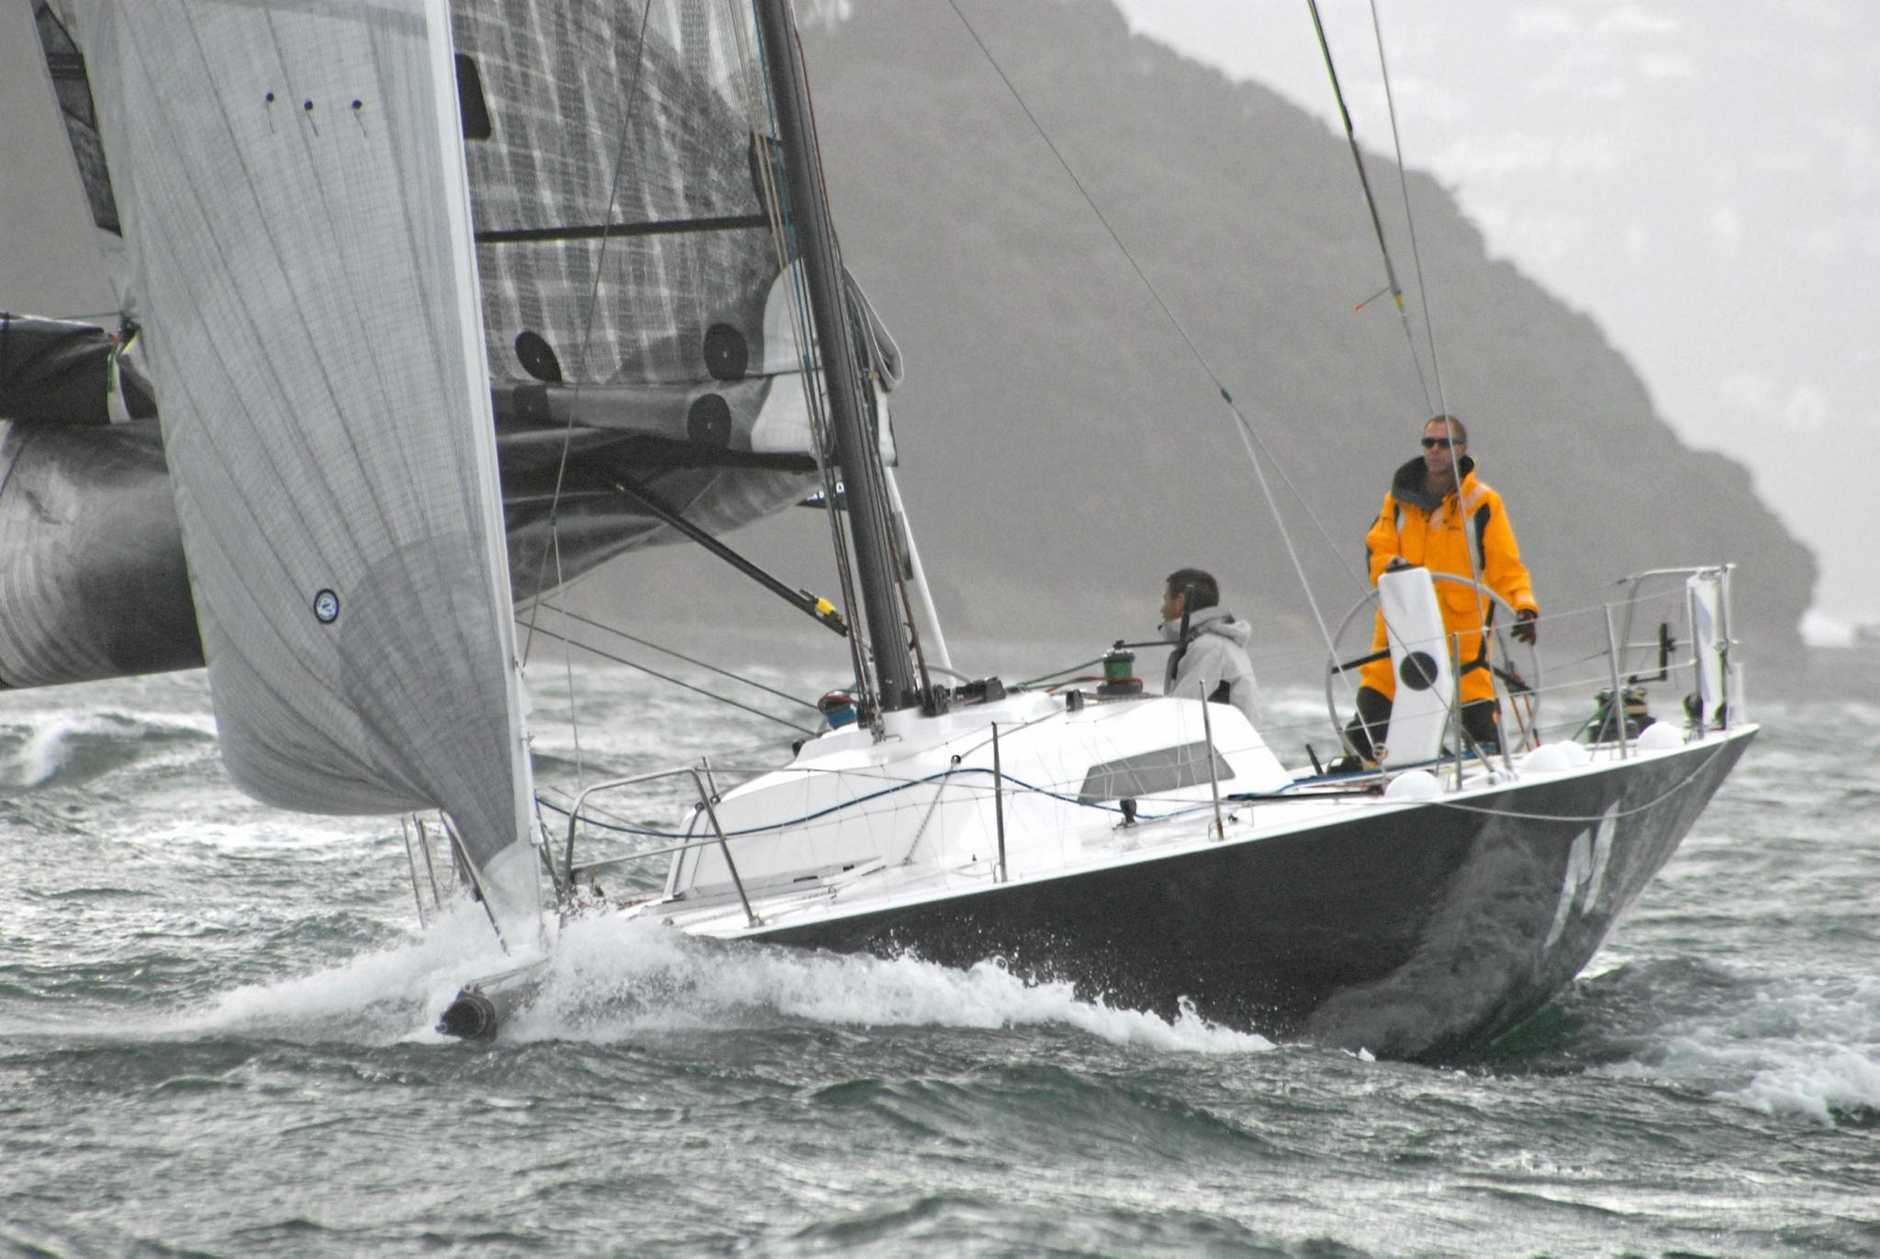 Dr Austin manning his yacht competing in the two-man race around the New Zealand north island.